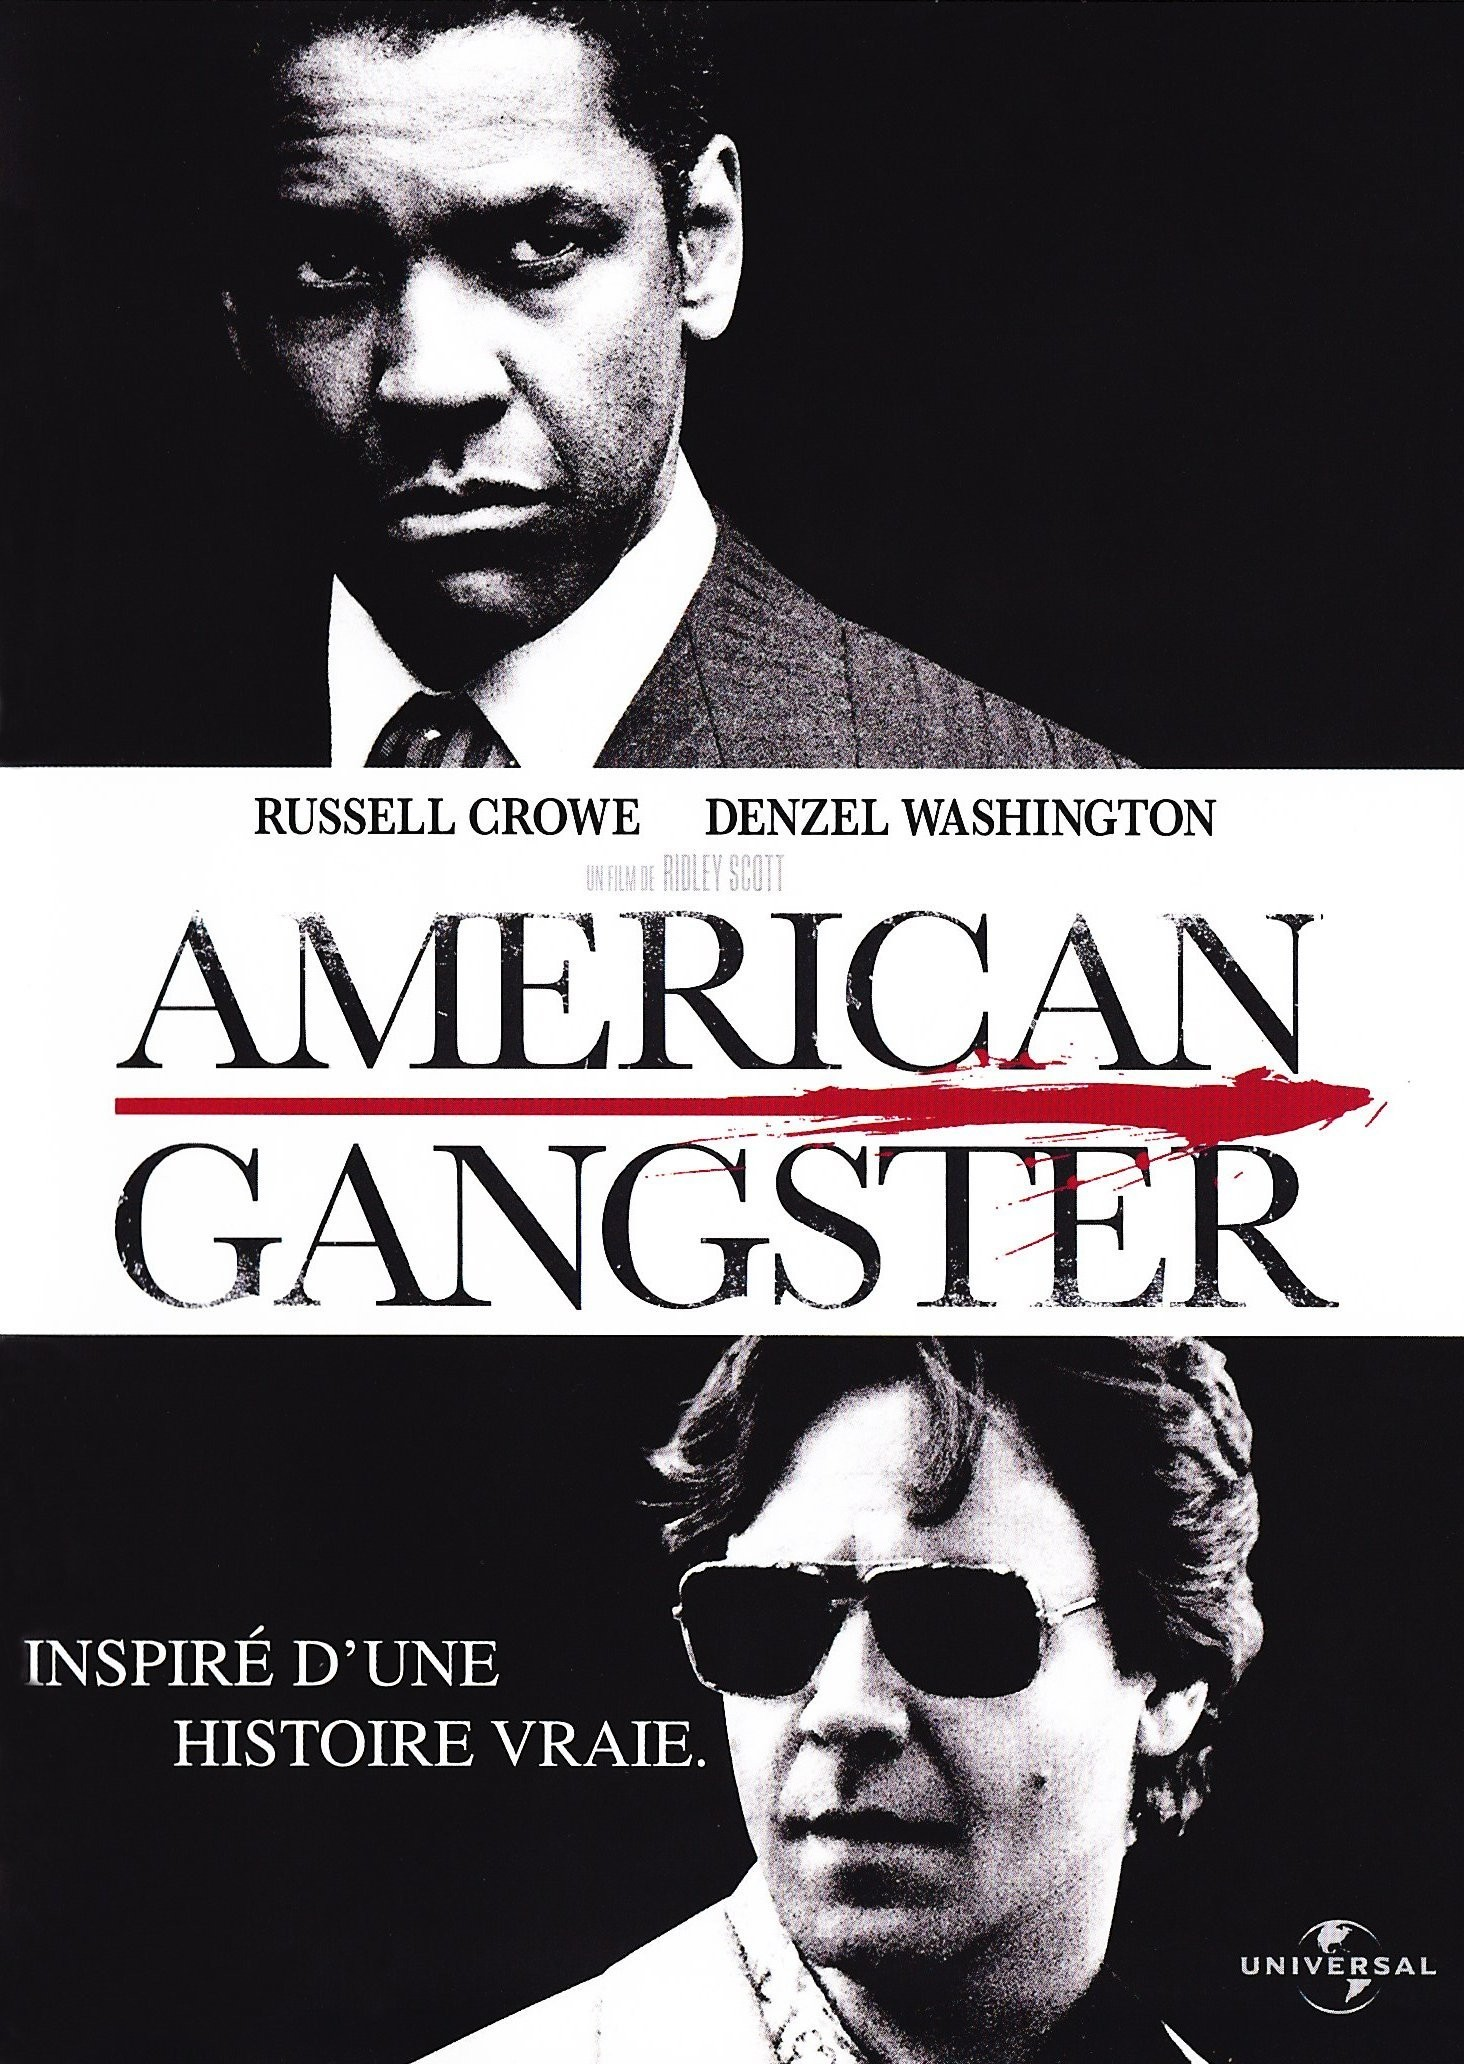 1920x1080 american gangster wallpapers